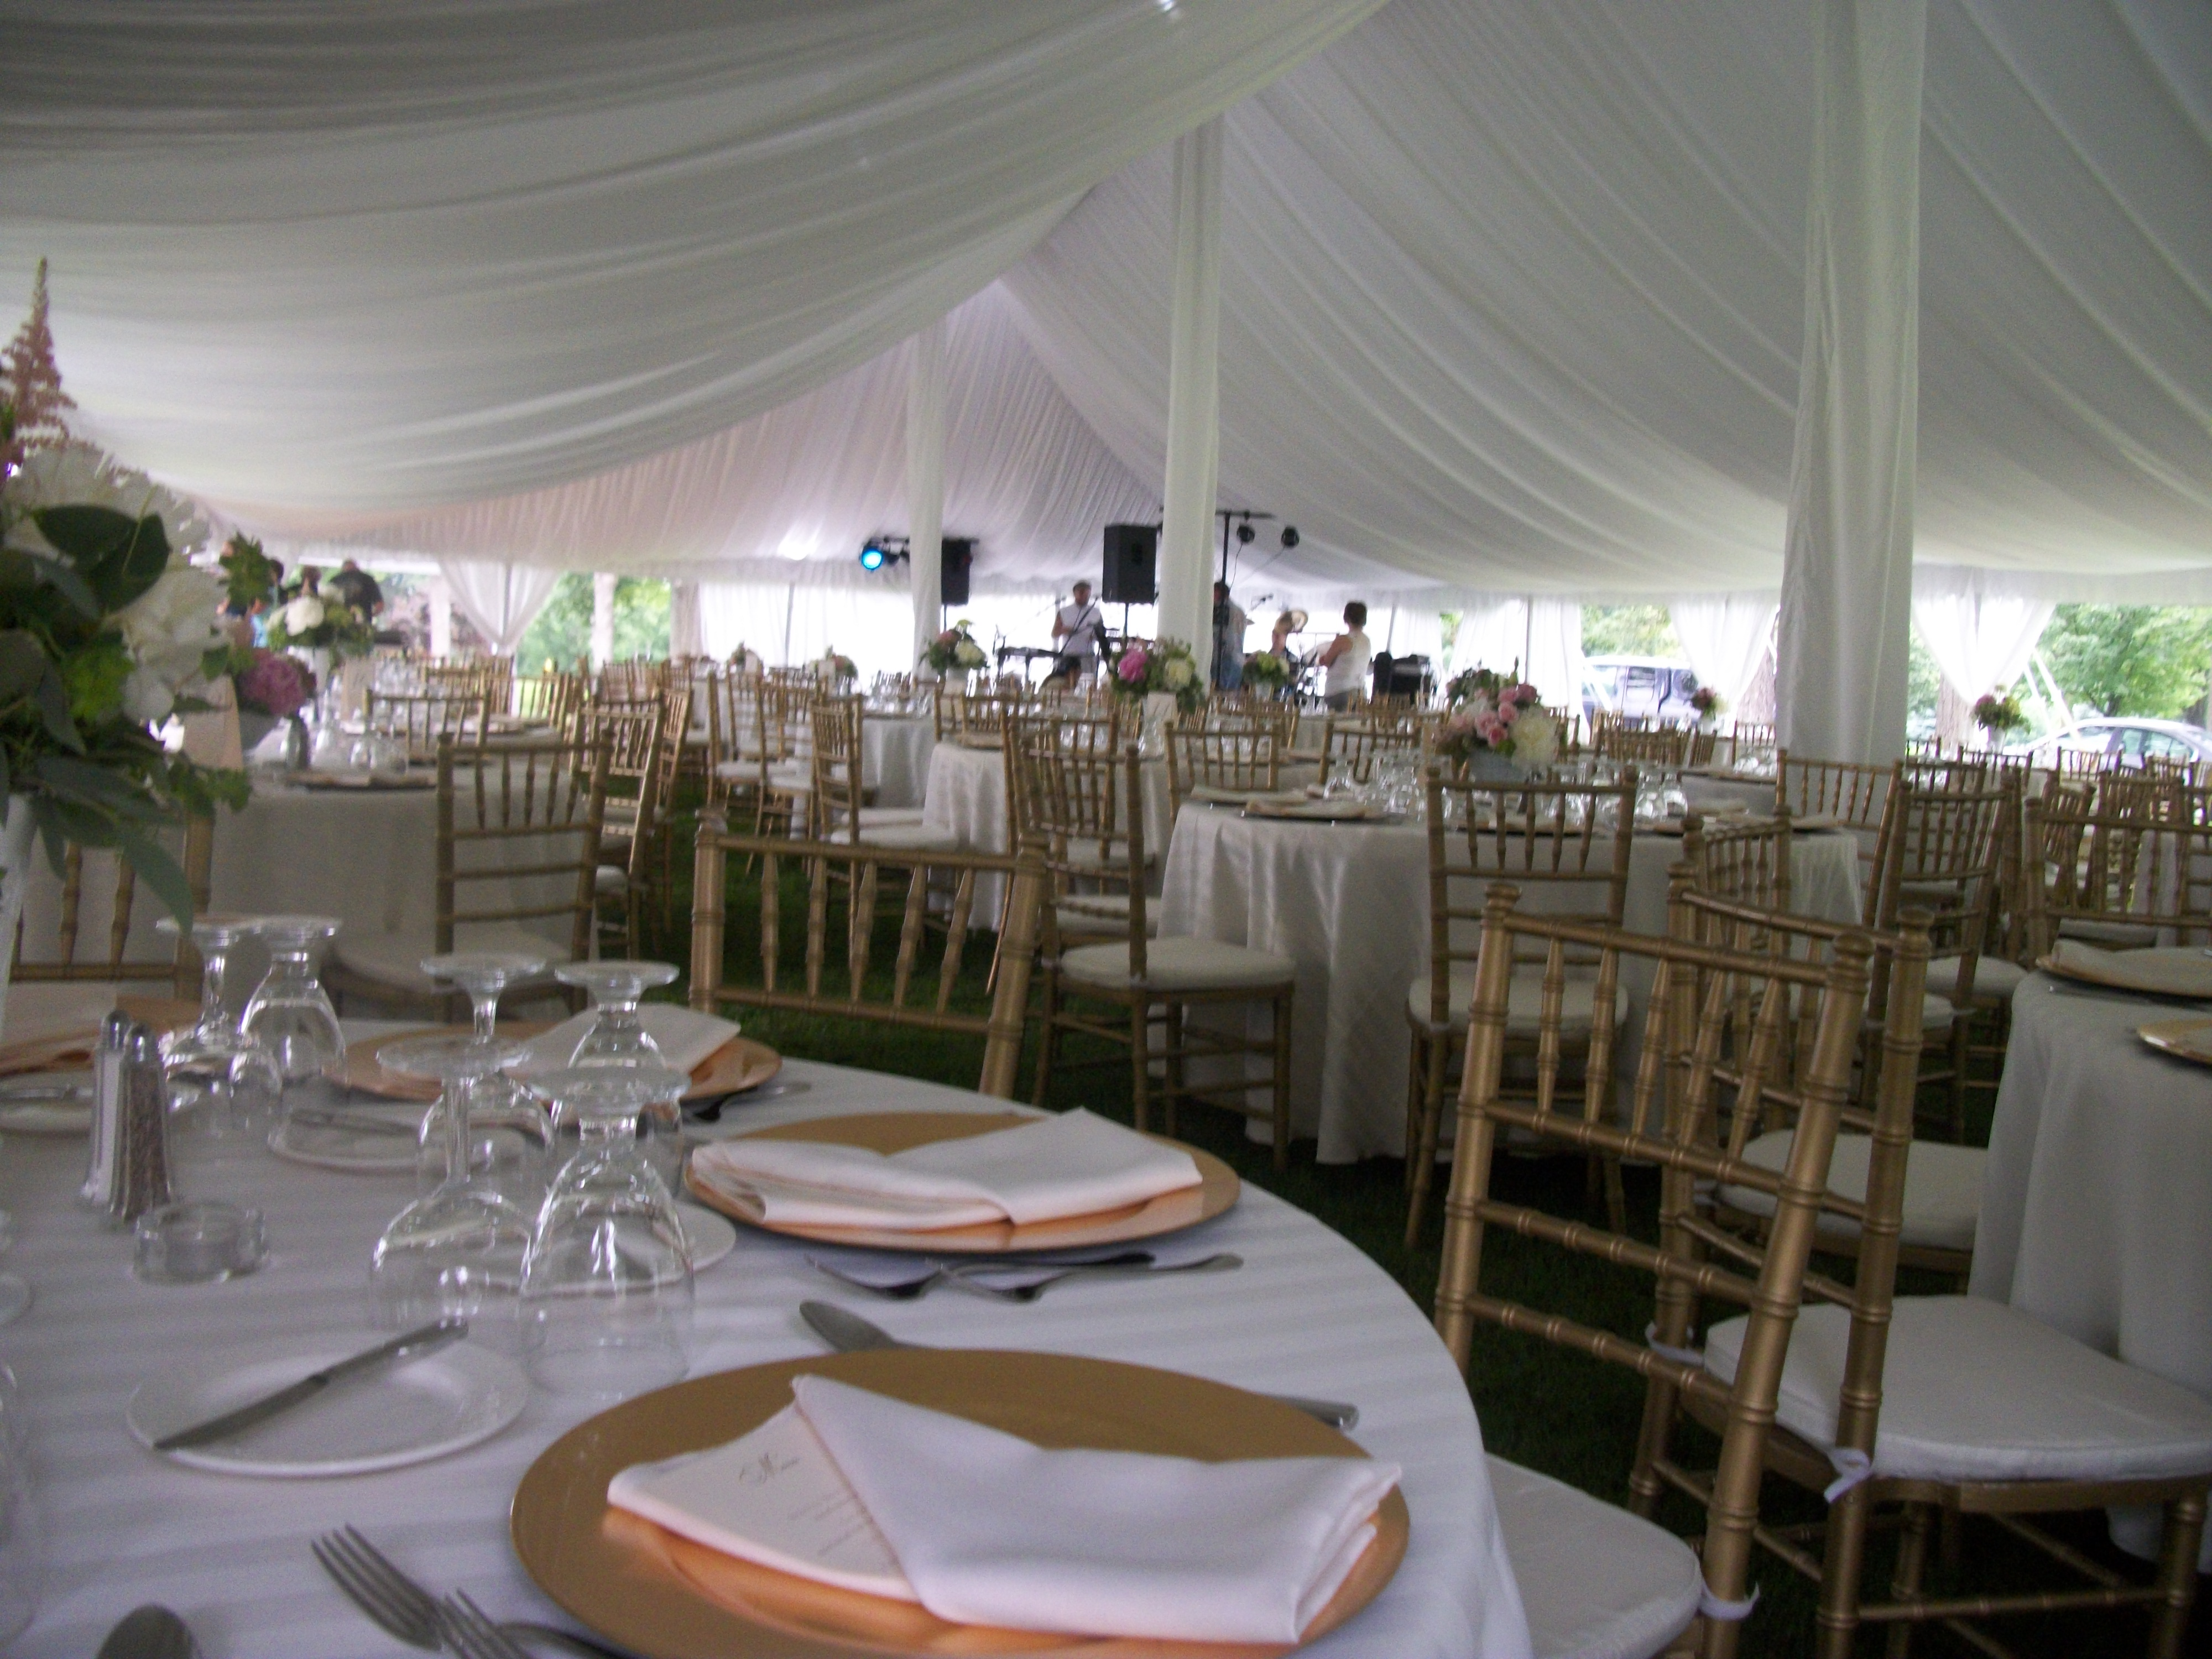 Party palace outdoor wedding event and party rentals tent liner tent liner photos tent rentals page wedding page get qoute junglespirit Images